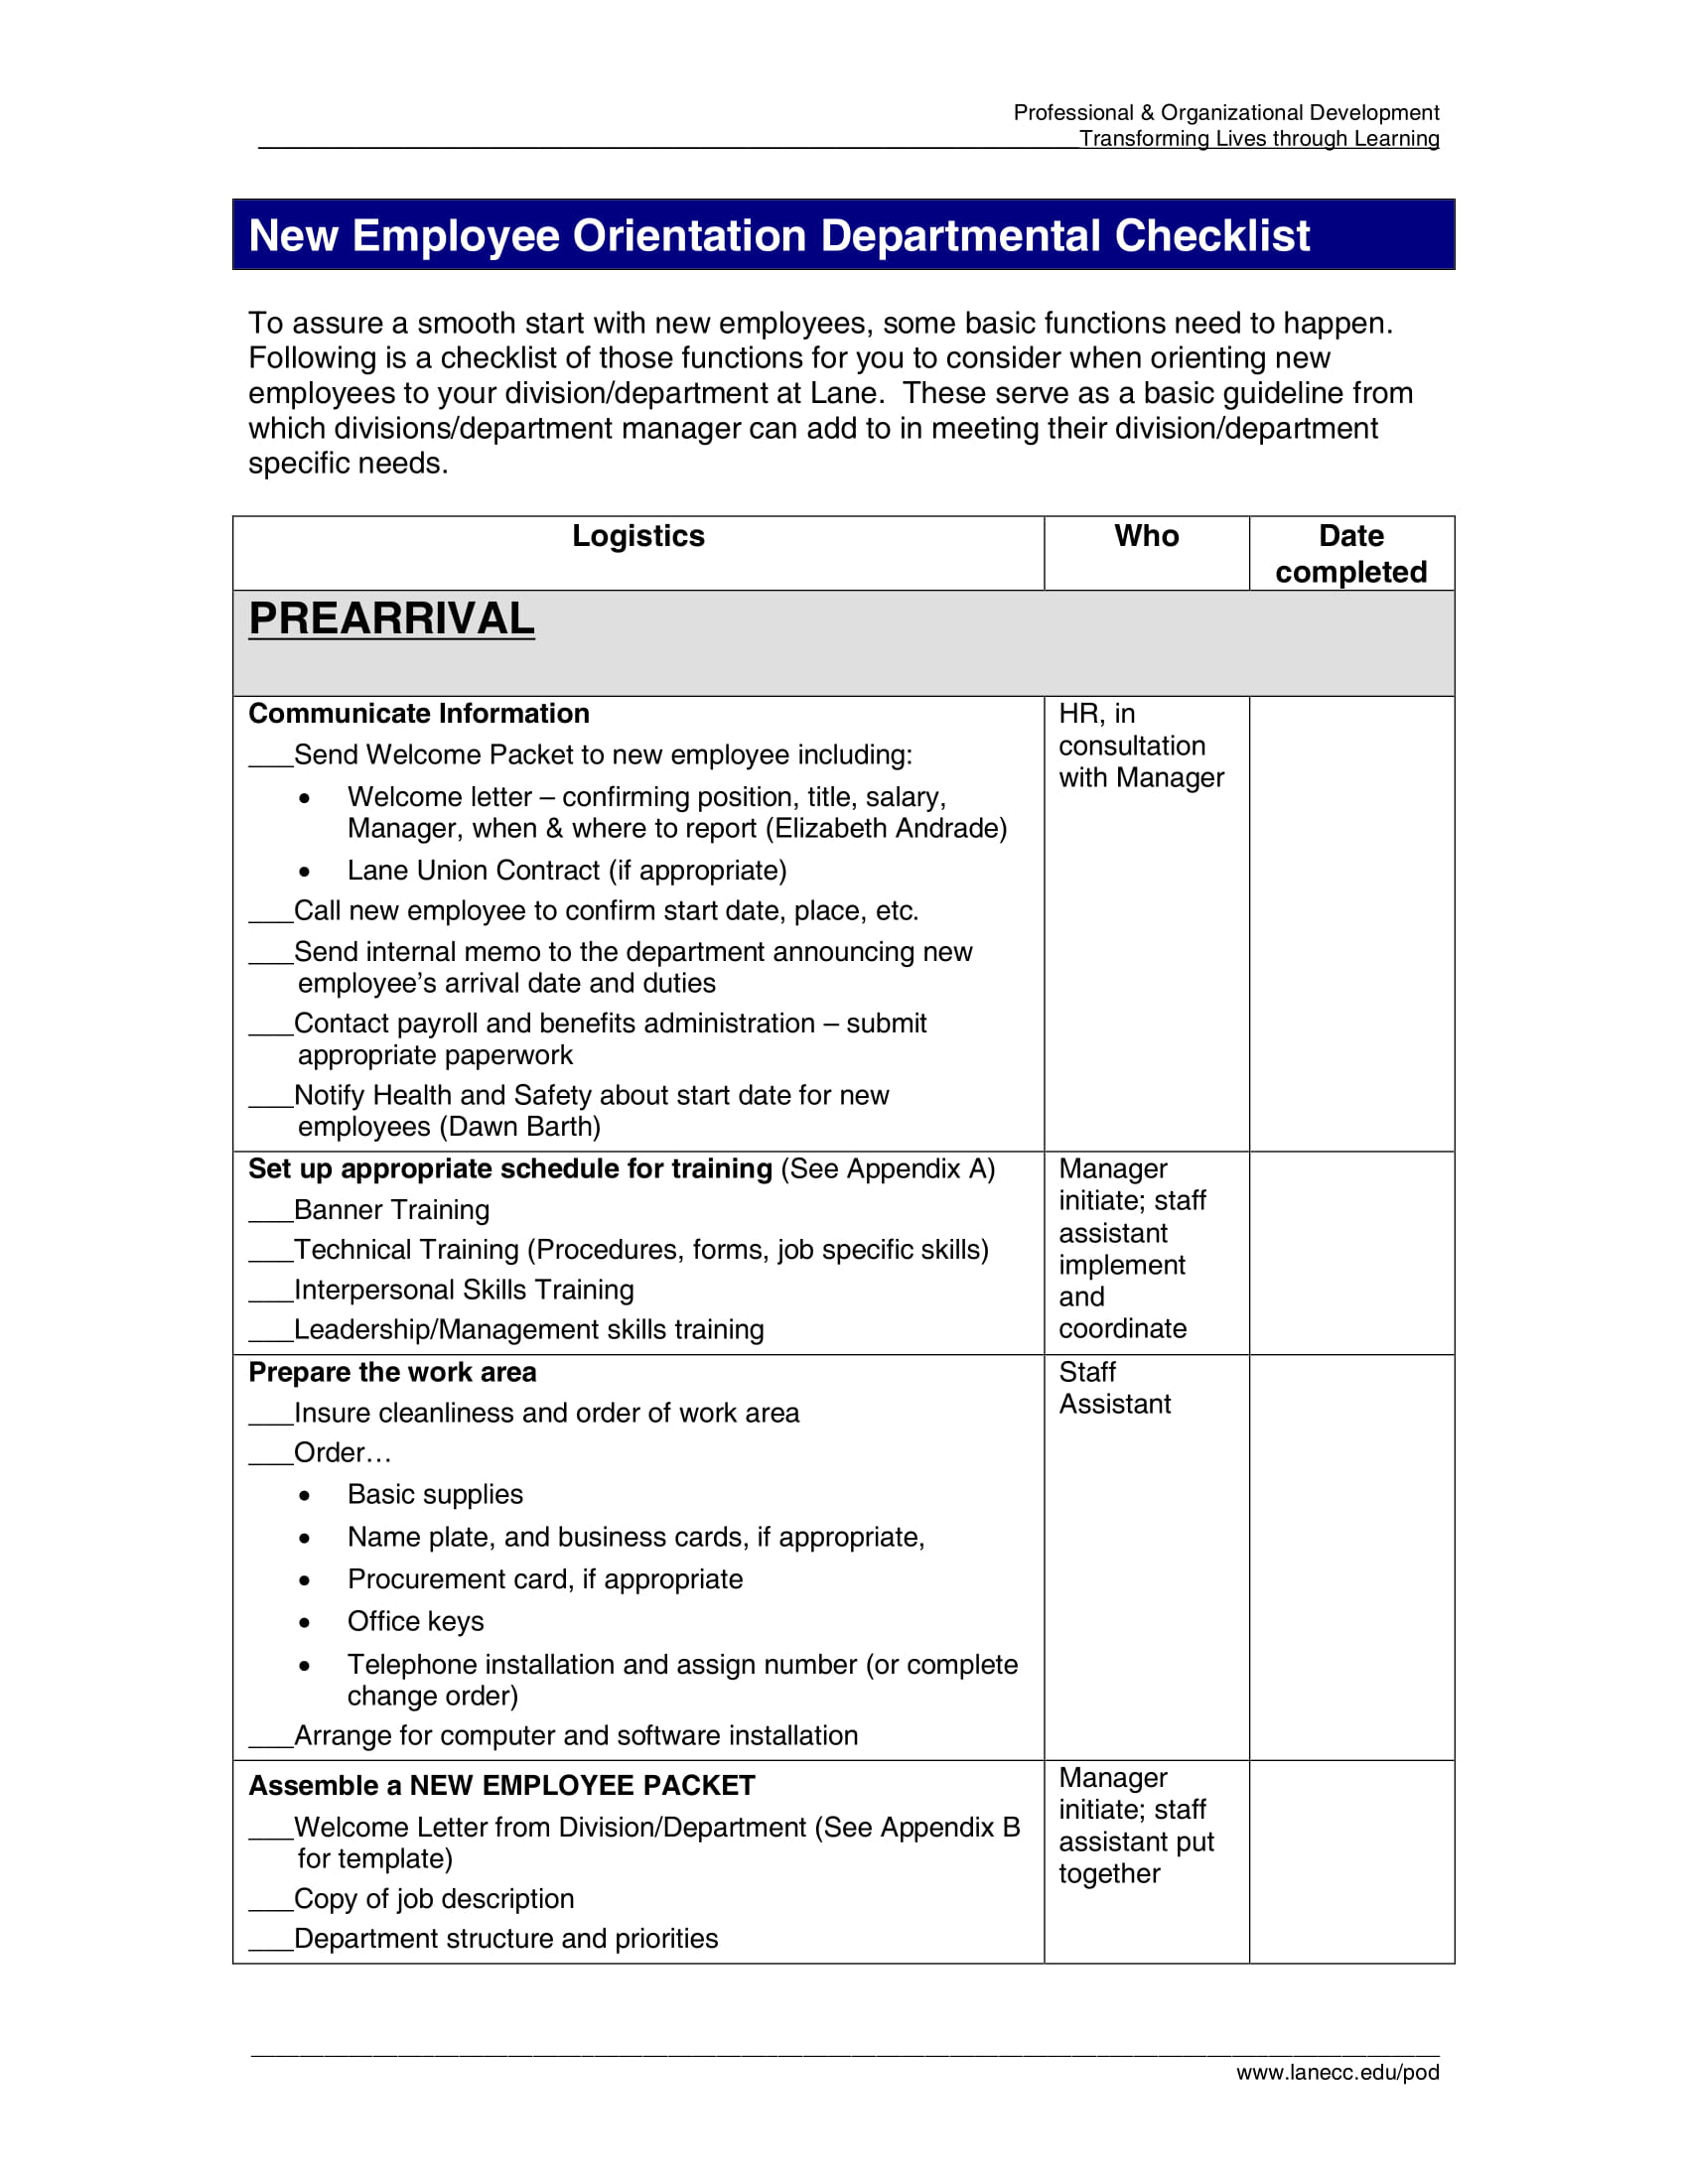 new employee orientation department checklist